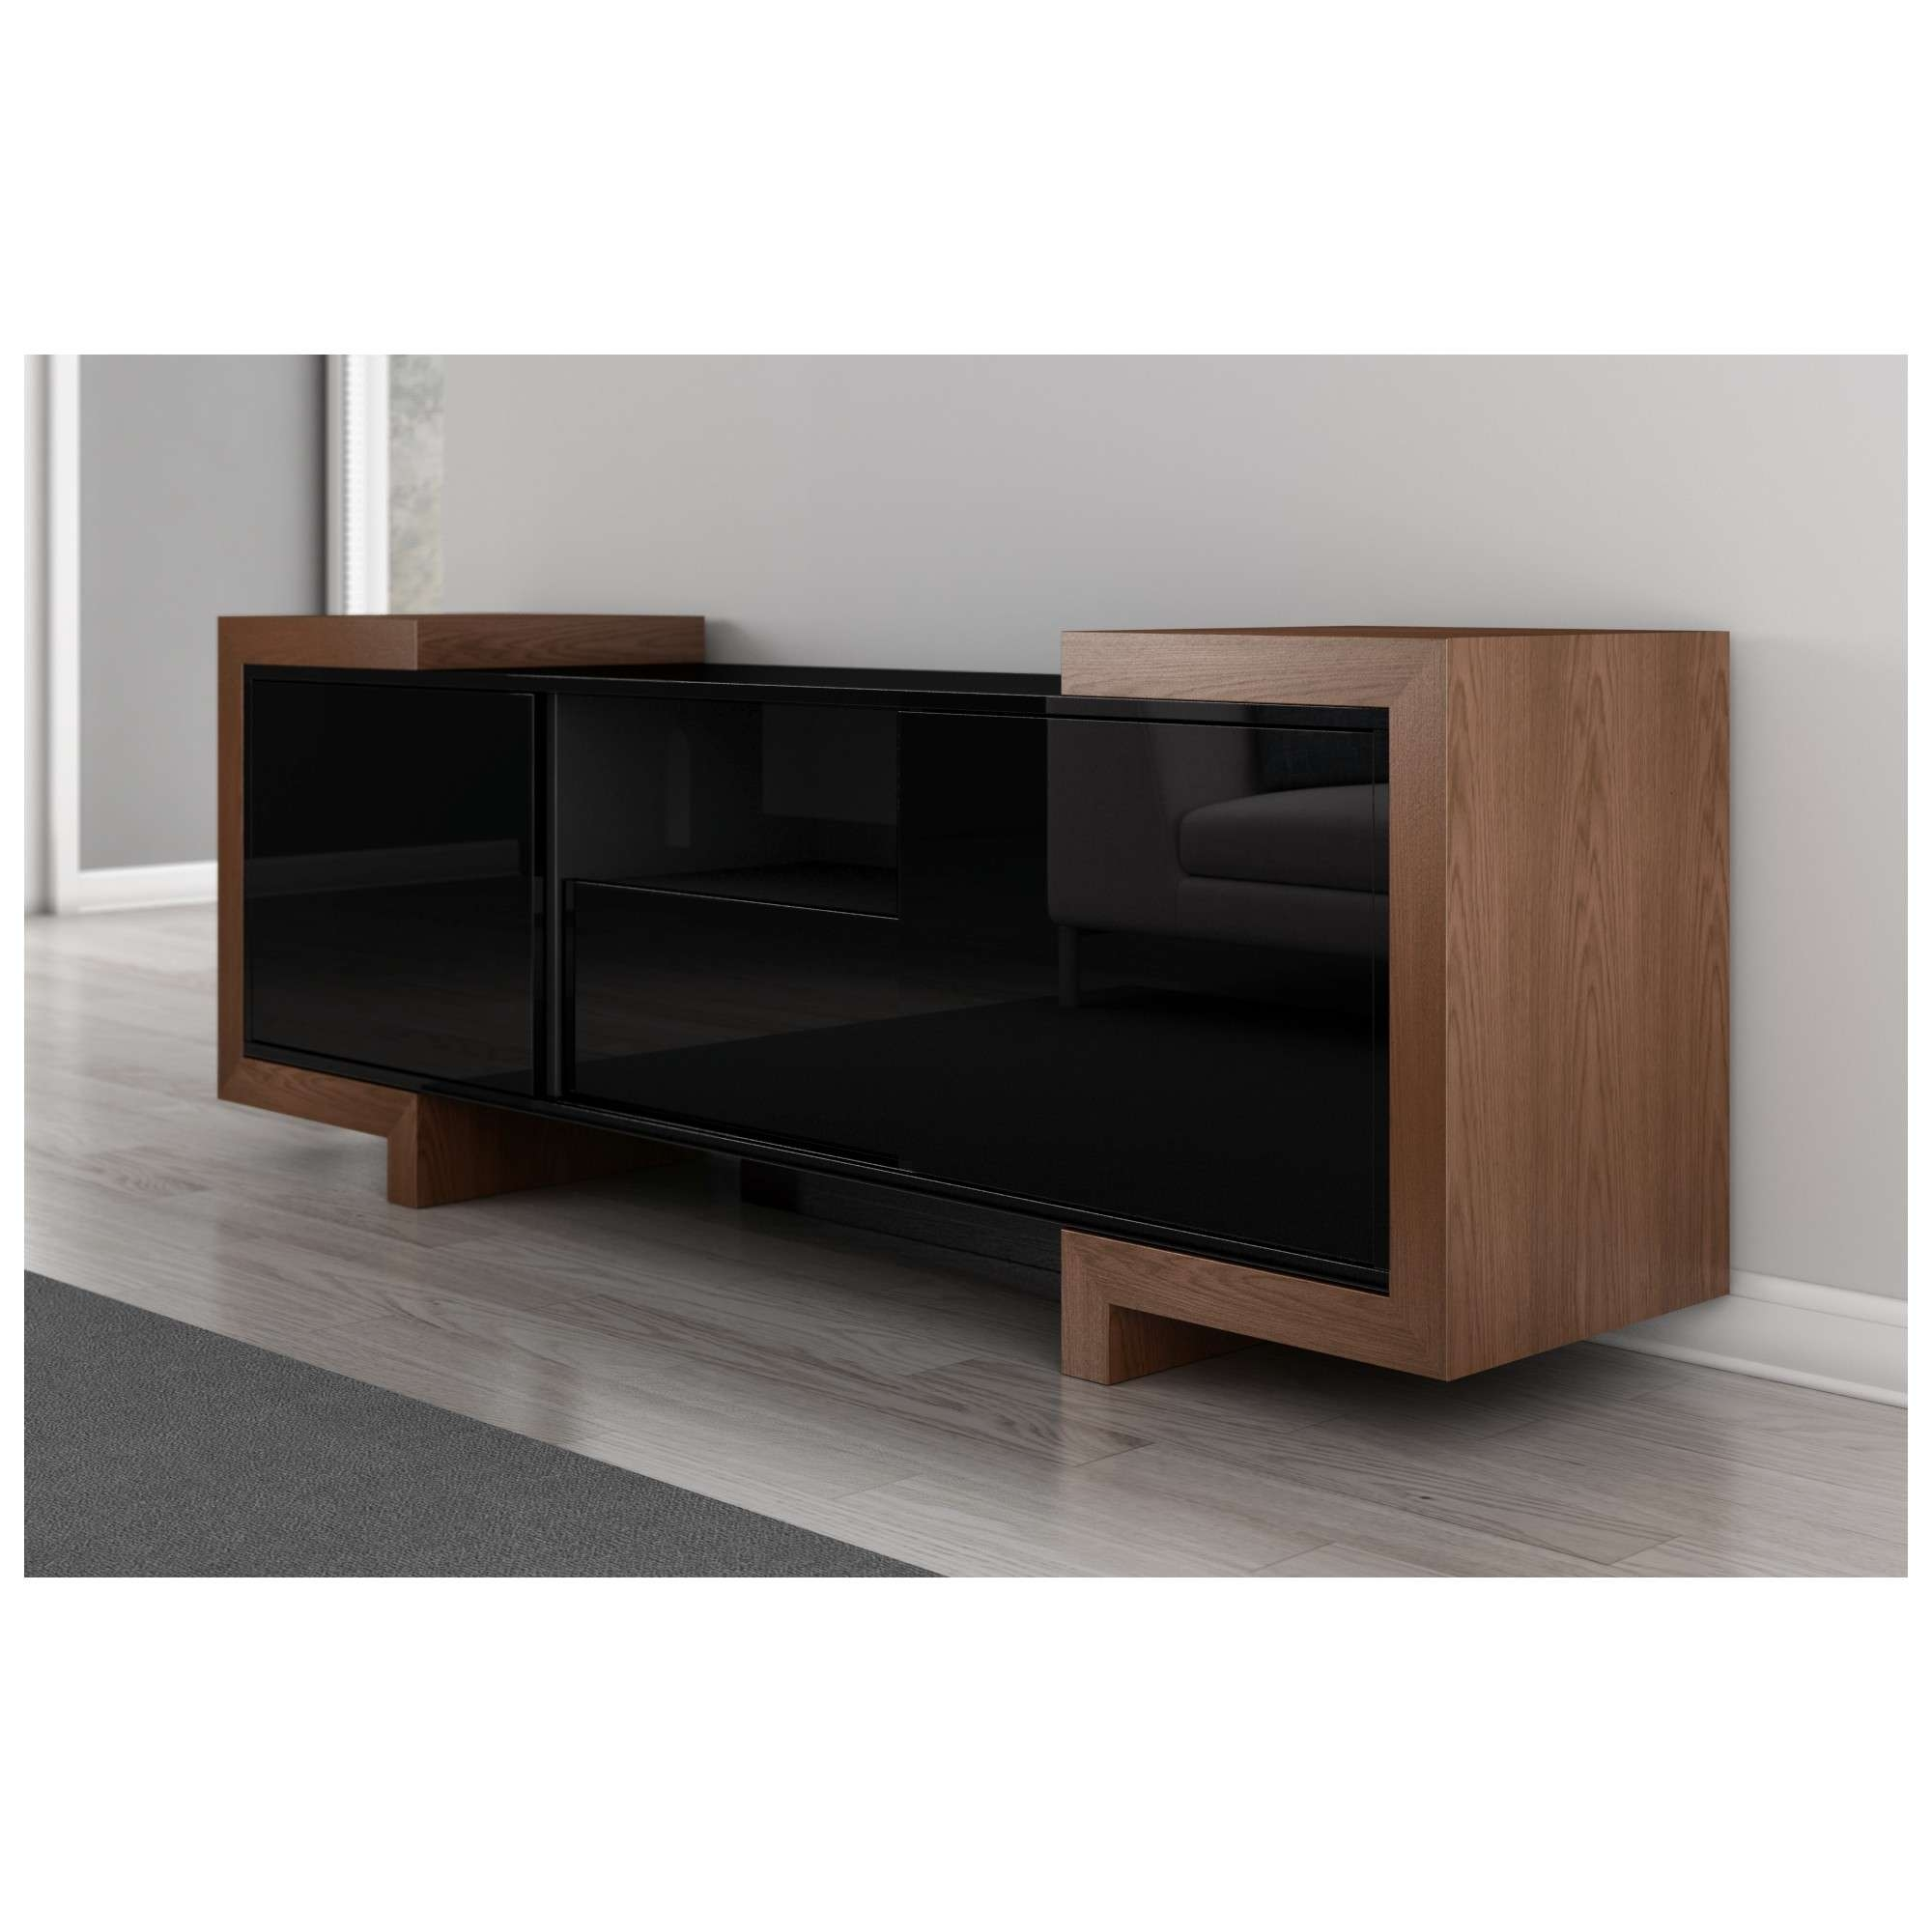 "Furnitech Ft75fa 75"" Tv Stand Contemporary Media Cabinet In High Inside Contemporary Oak Tv Stands (View 11 of 15)"